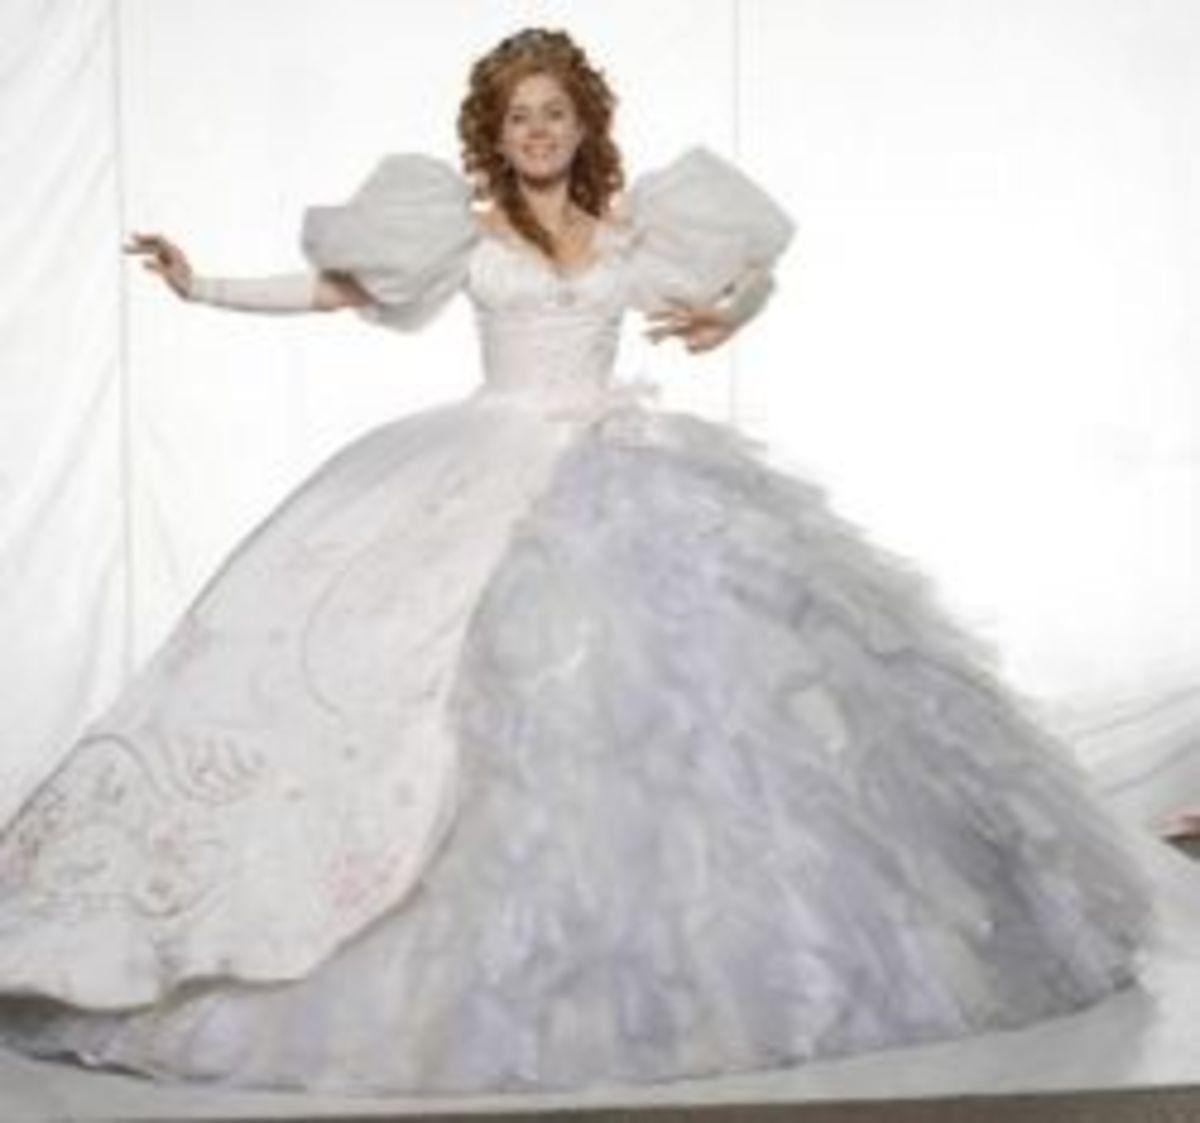 Giselle (Amy Adams) from Enchanted